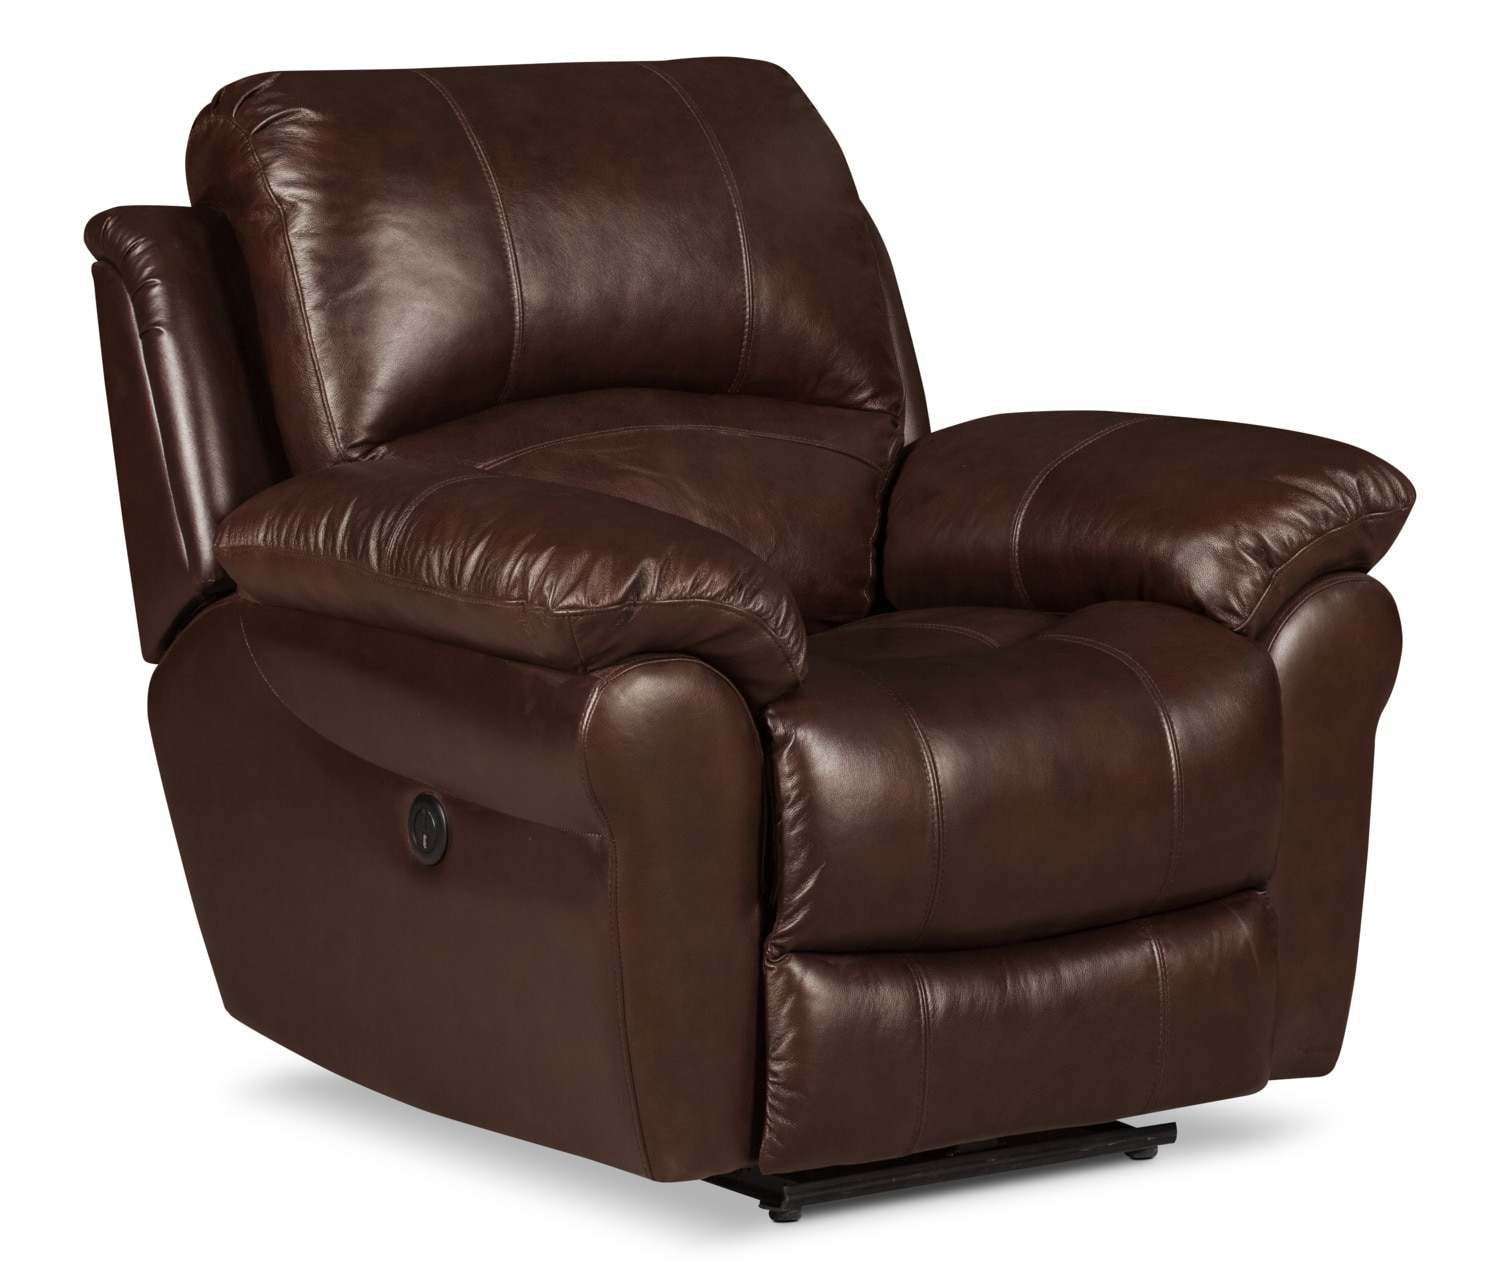 Kobe Genuine Leather Power Reclining Chair – Brown